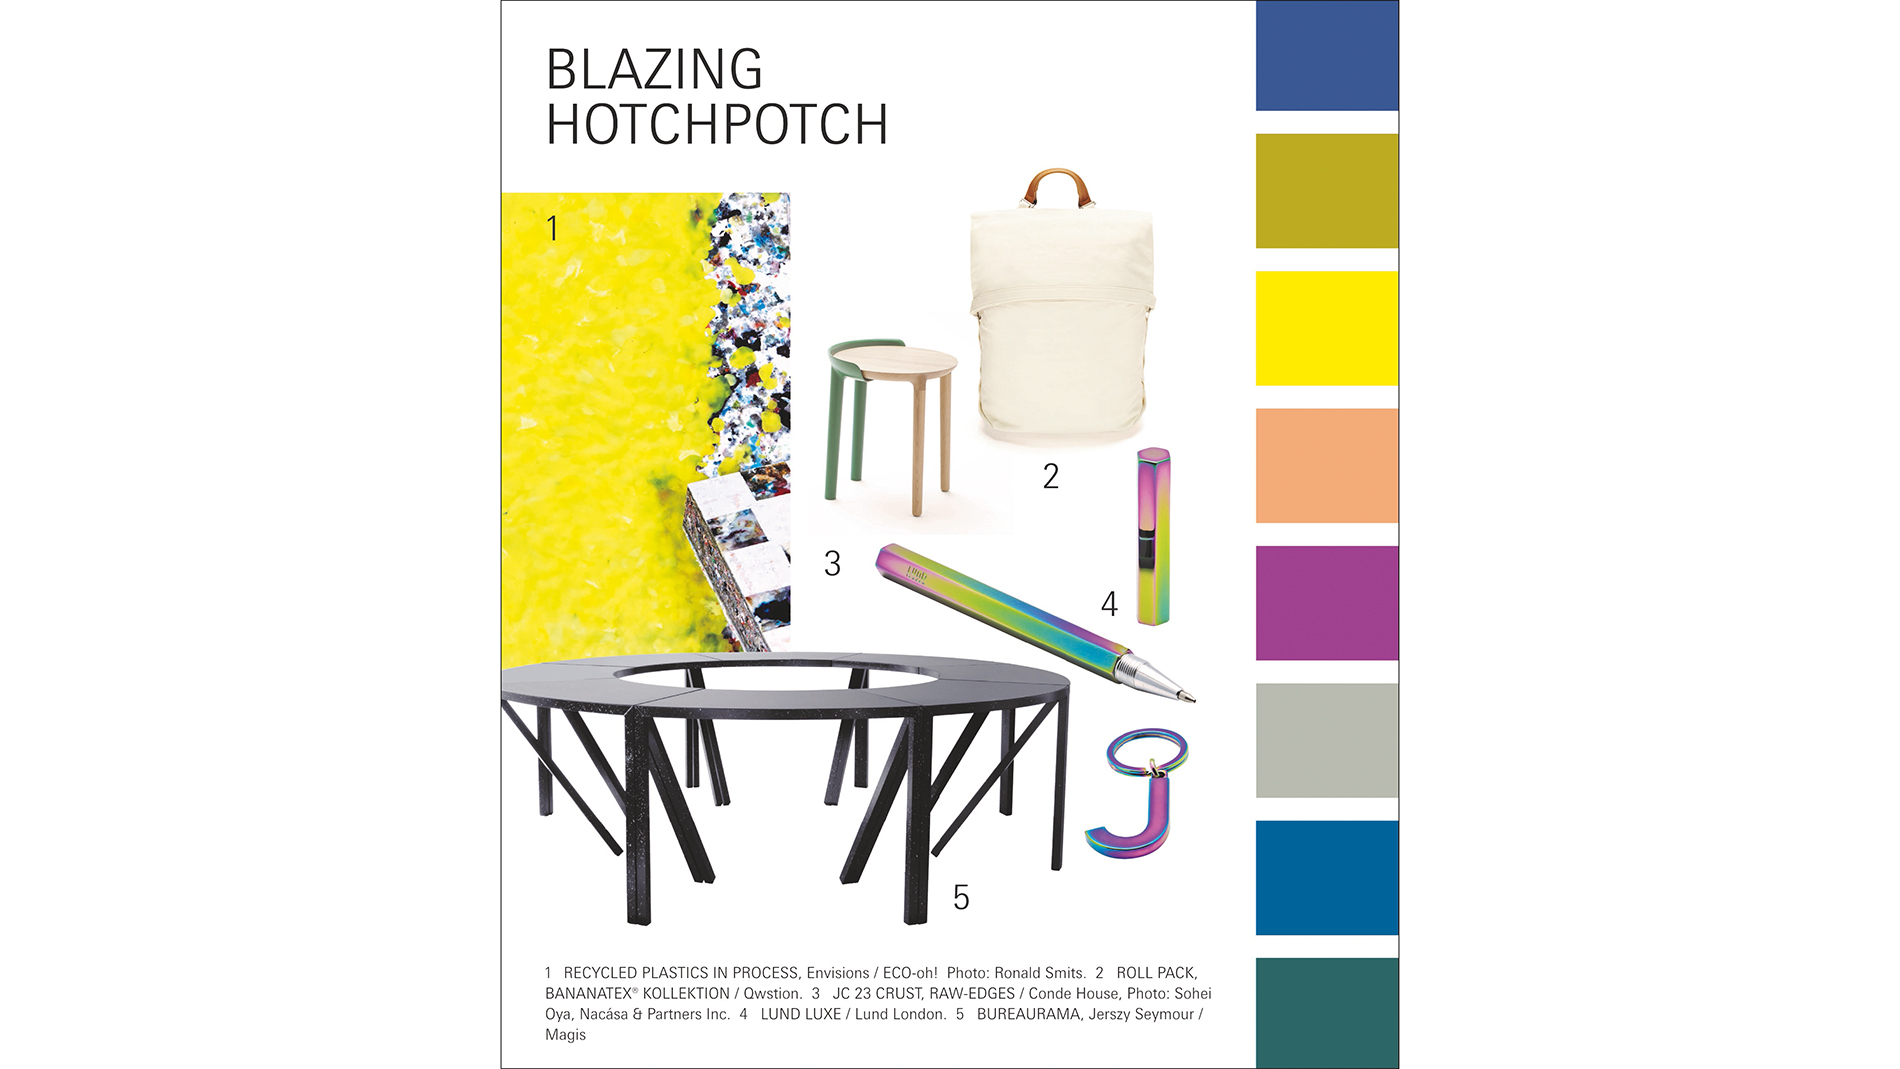 Paperworld Trends 2020/21: Trendkarte zu Blazing Hotchpotch